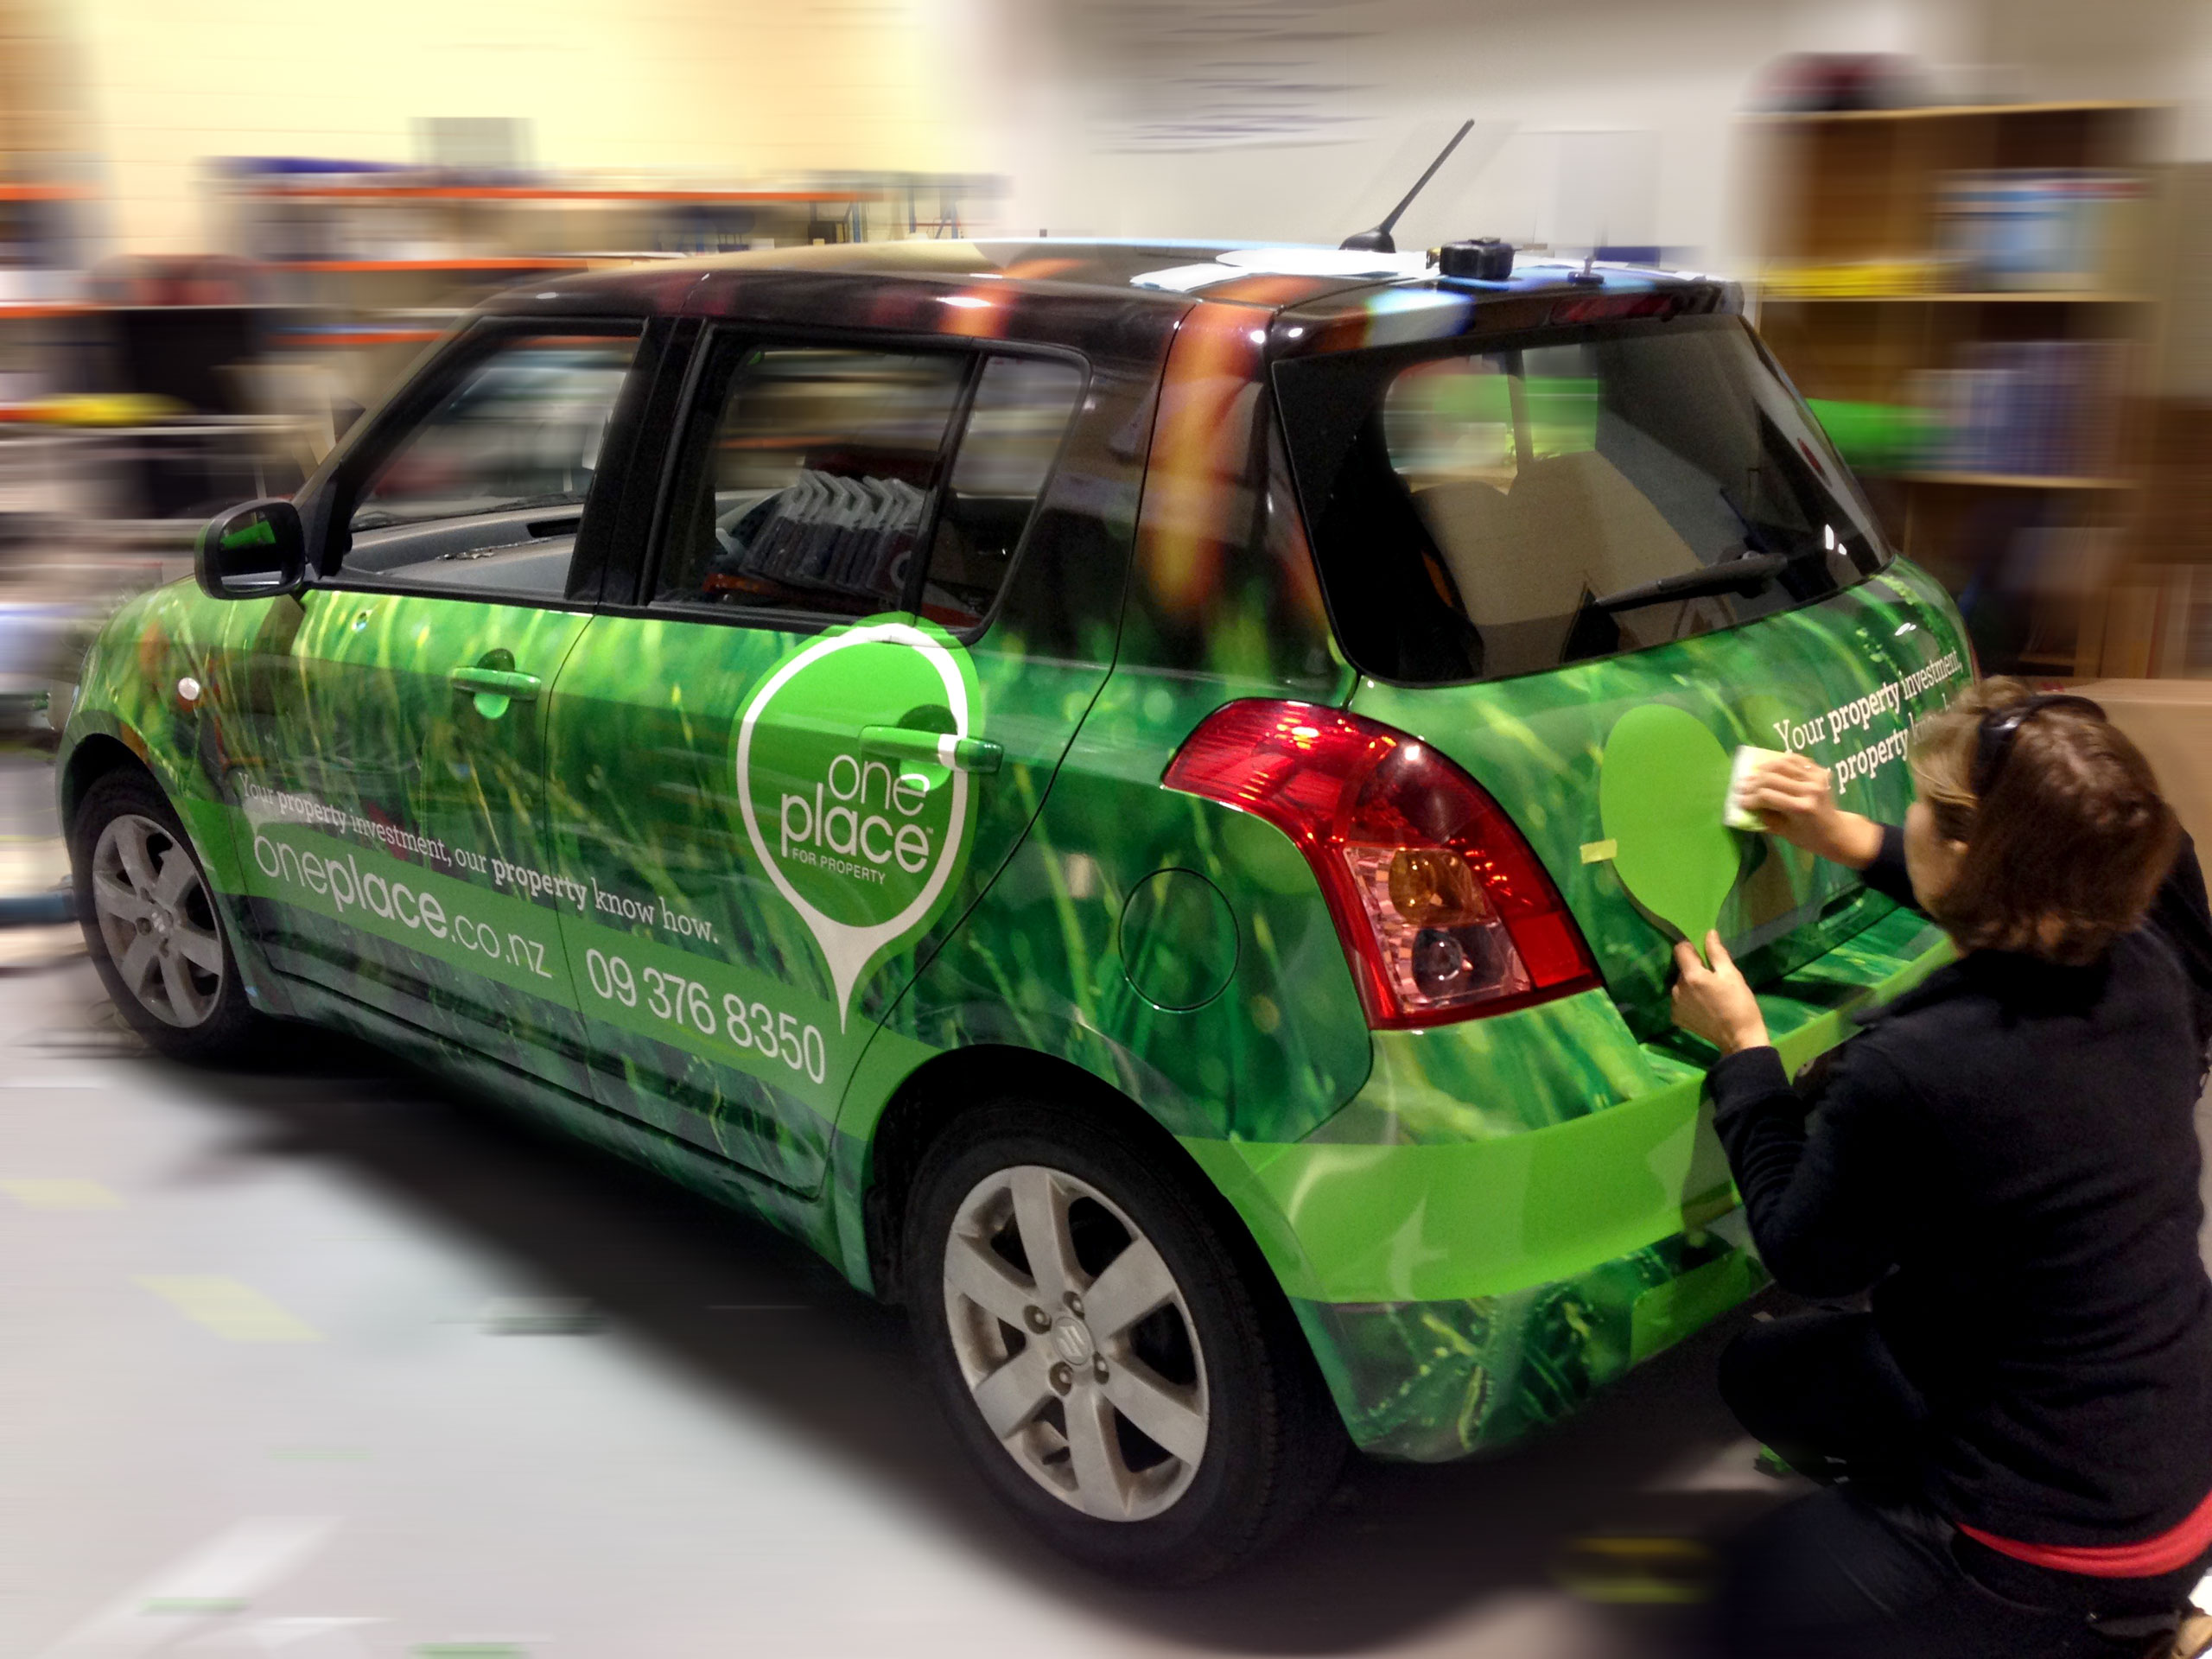 branded vehicles look great with a full vehicle wrap